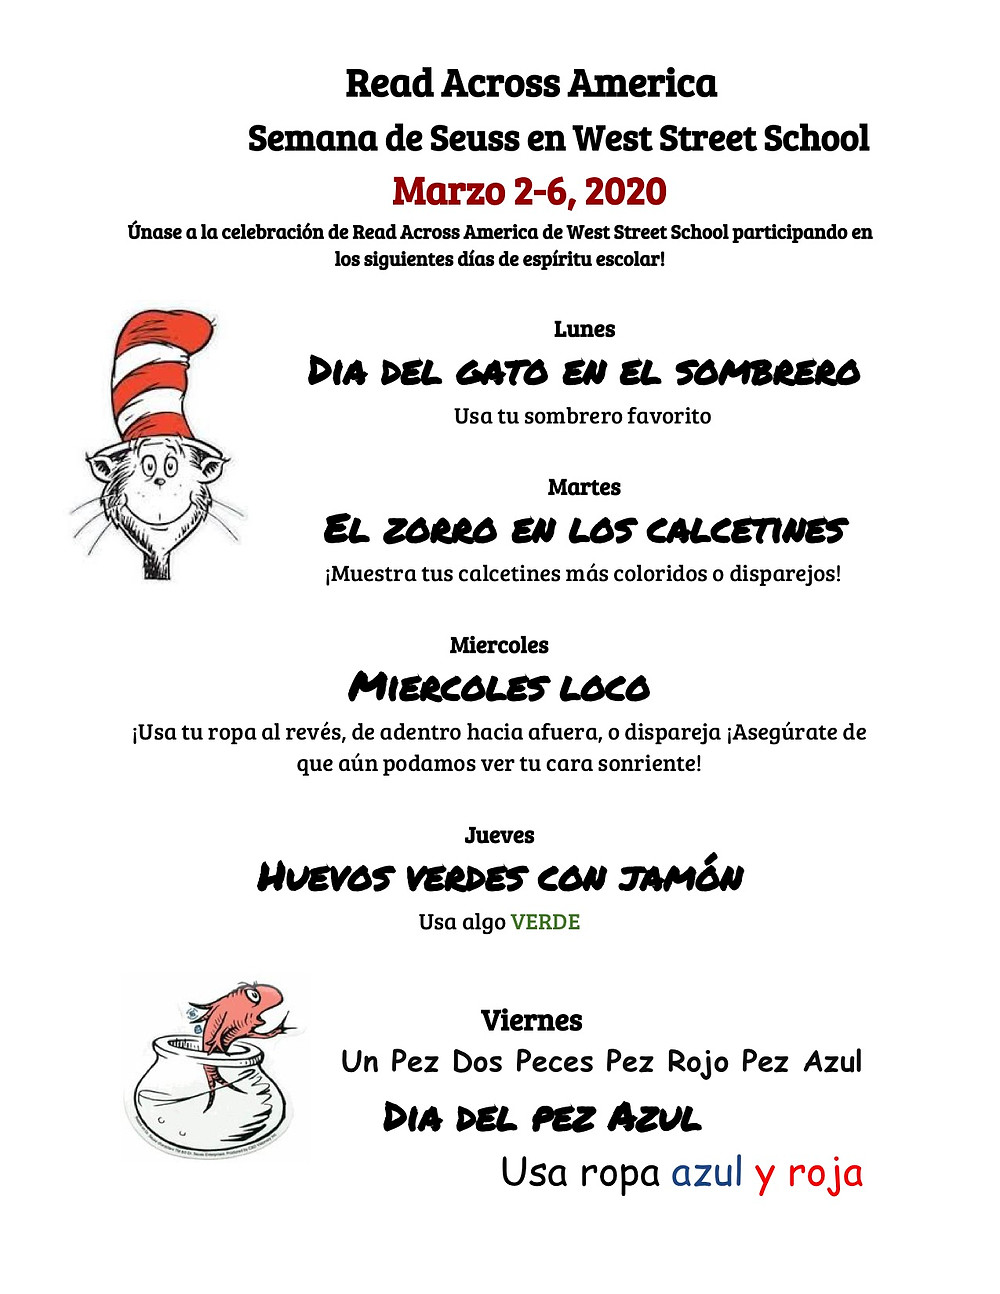 Flyer for Read Across America at West Street School in Spanish